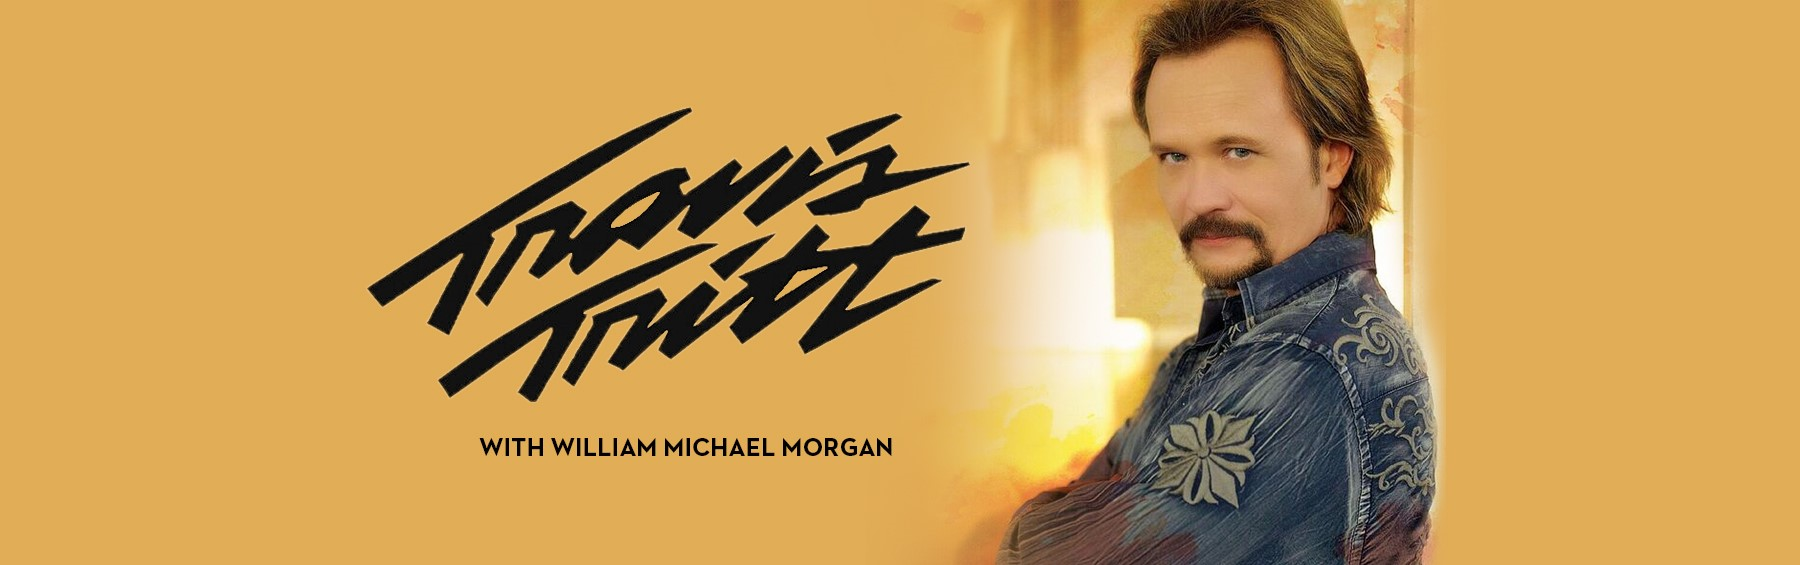 Travis Tritt with William Michael Morgan